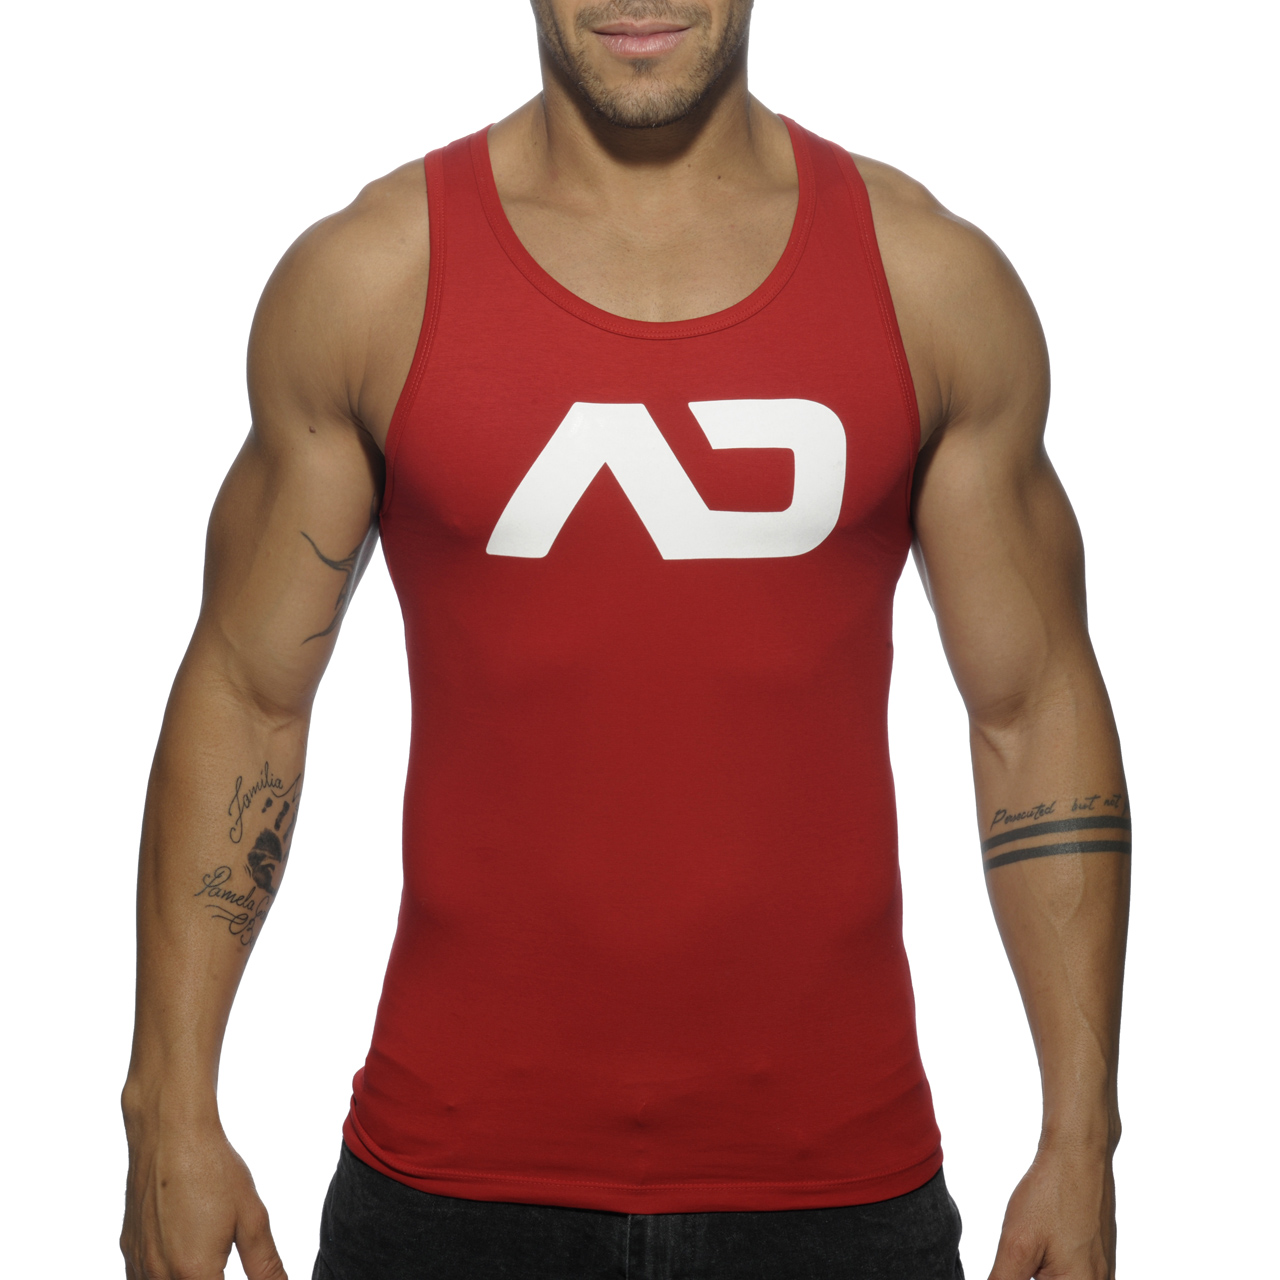 BASIC AD TANK TOP ROUGE 06